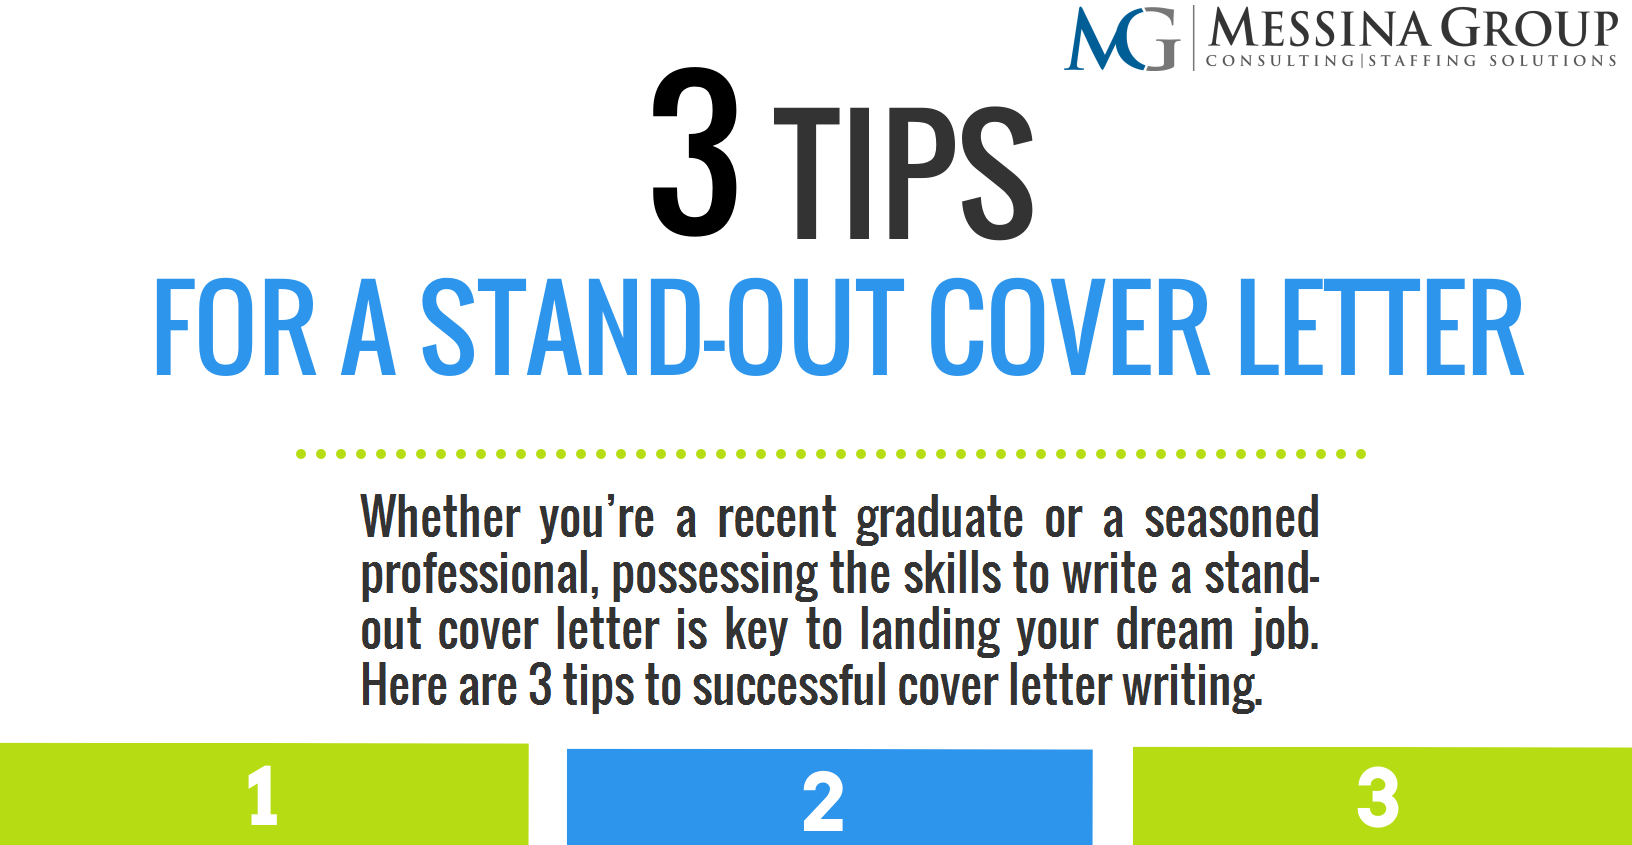 cover letter writing techniques cover letter cover letter how to cover letter writing tips cover letter writing tips cover letter